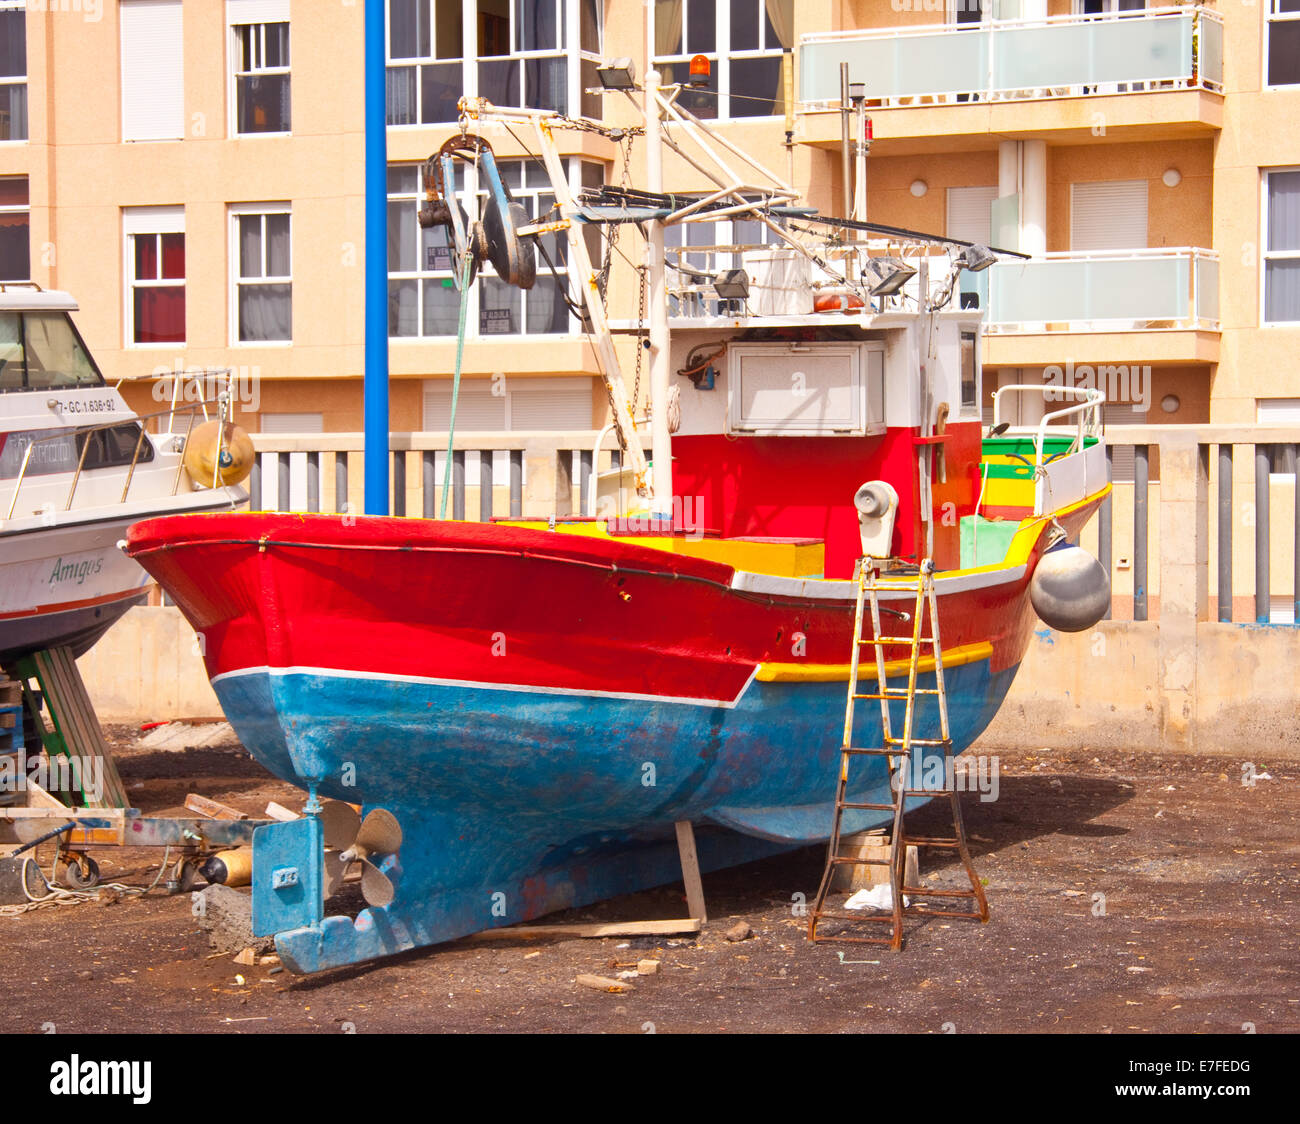 Bright red boat in boatyard on Canary Islands - Stock Image